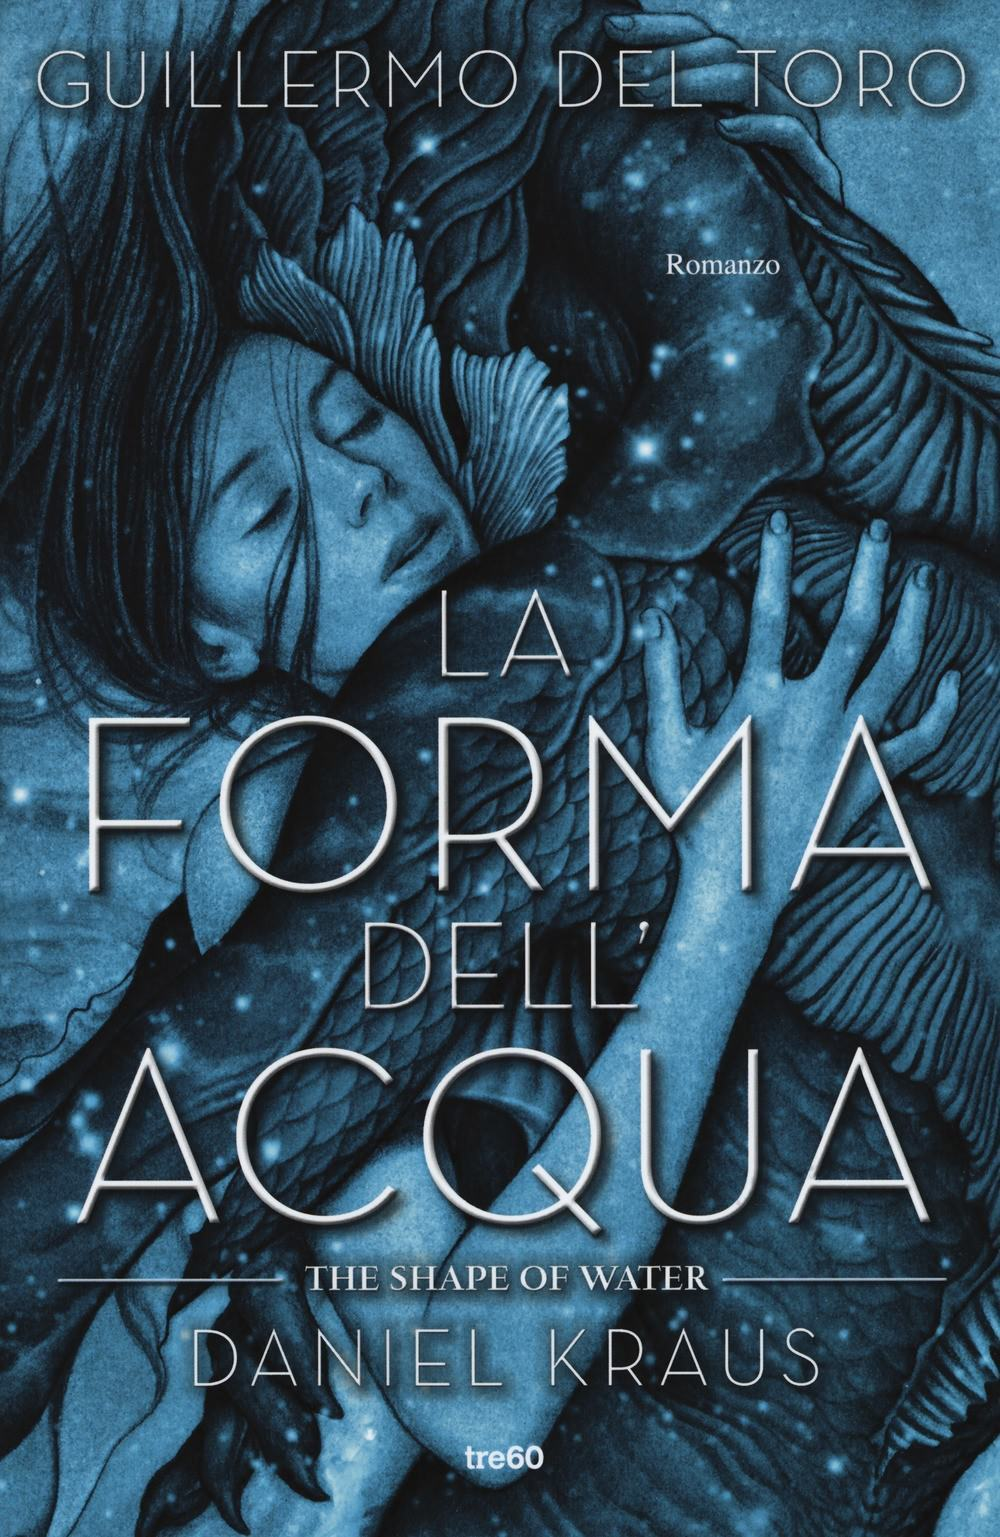 libro-la-forma-dellacqua-the-shape-of-water-9788867024643